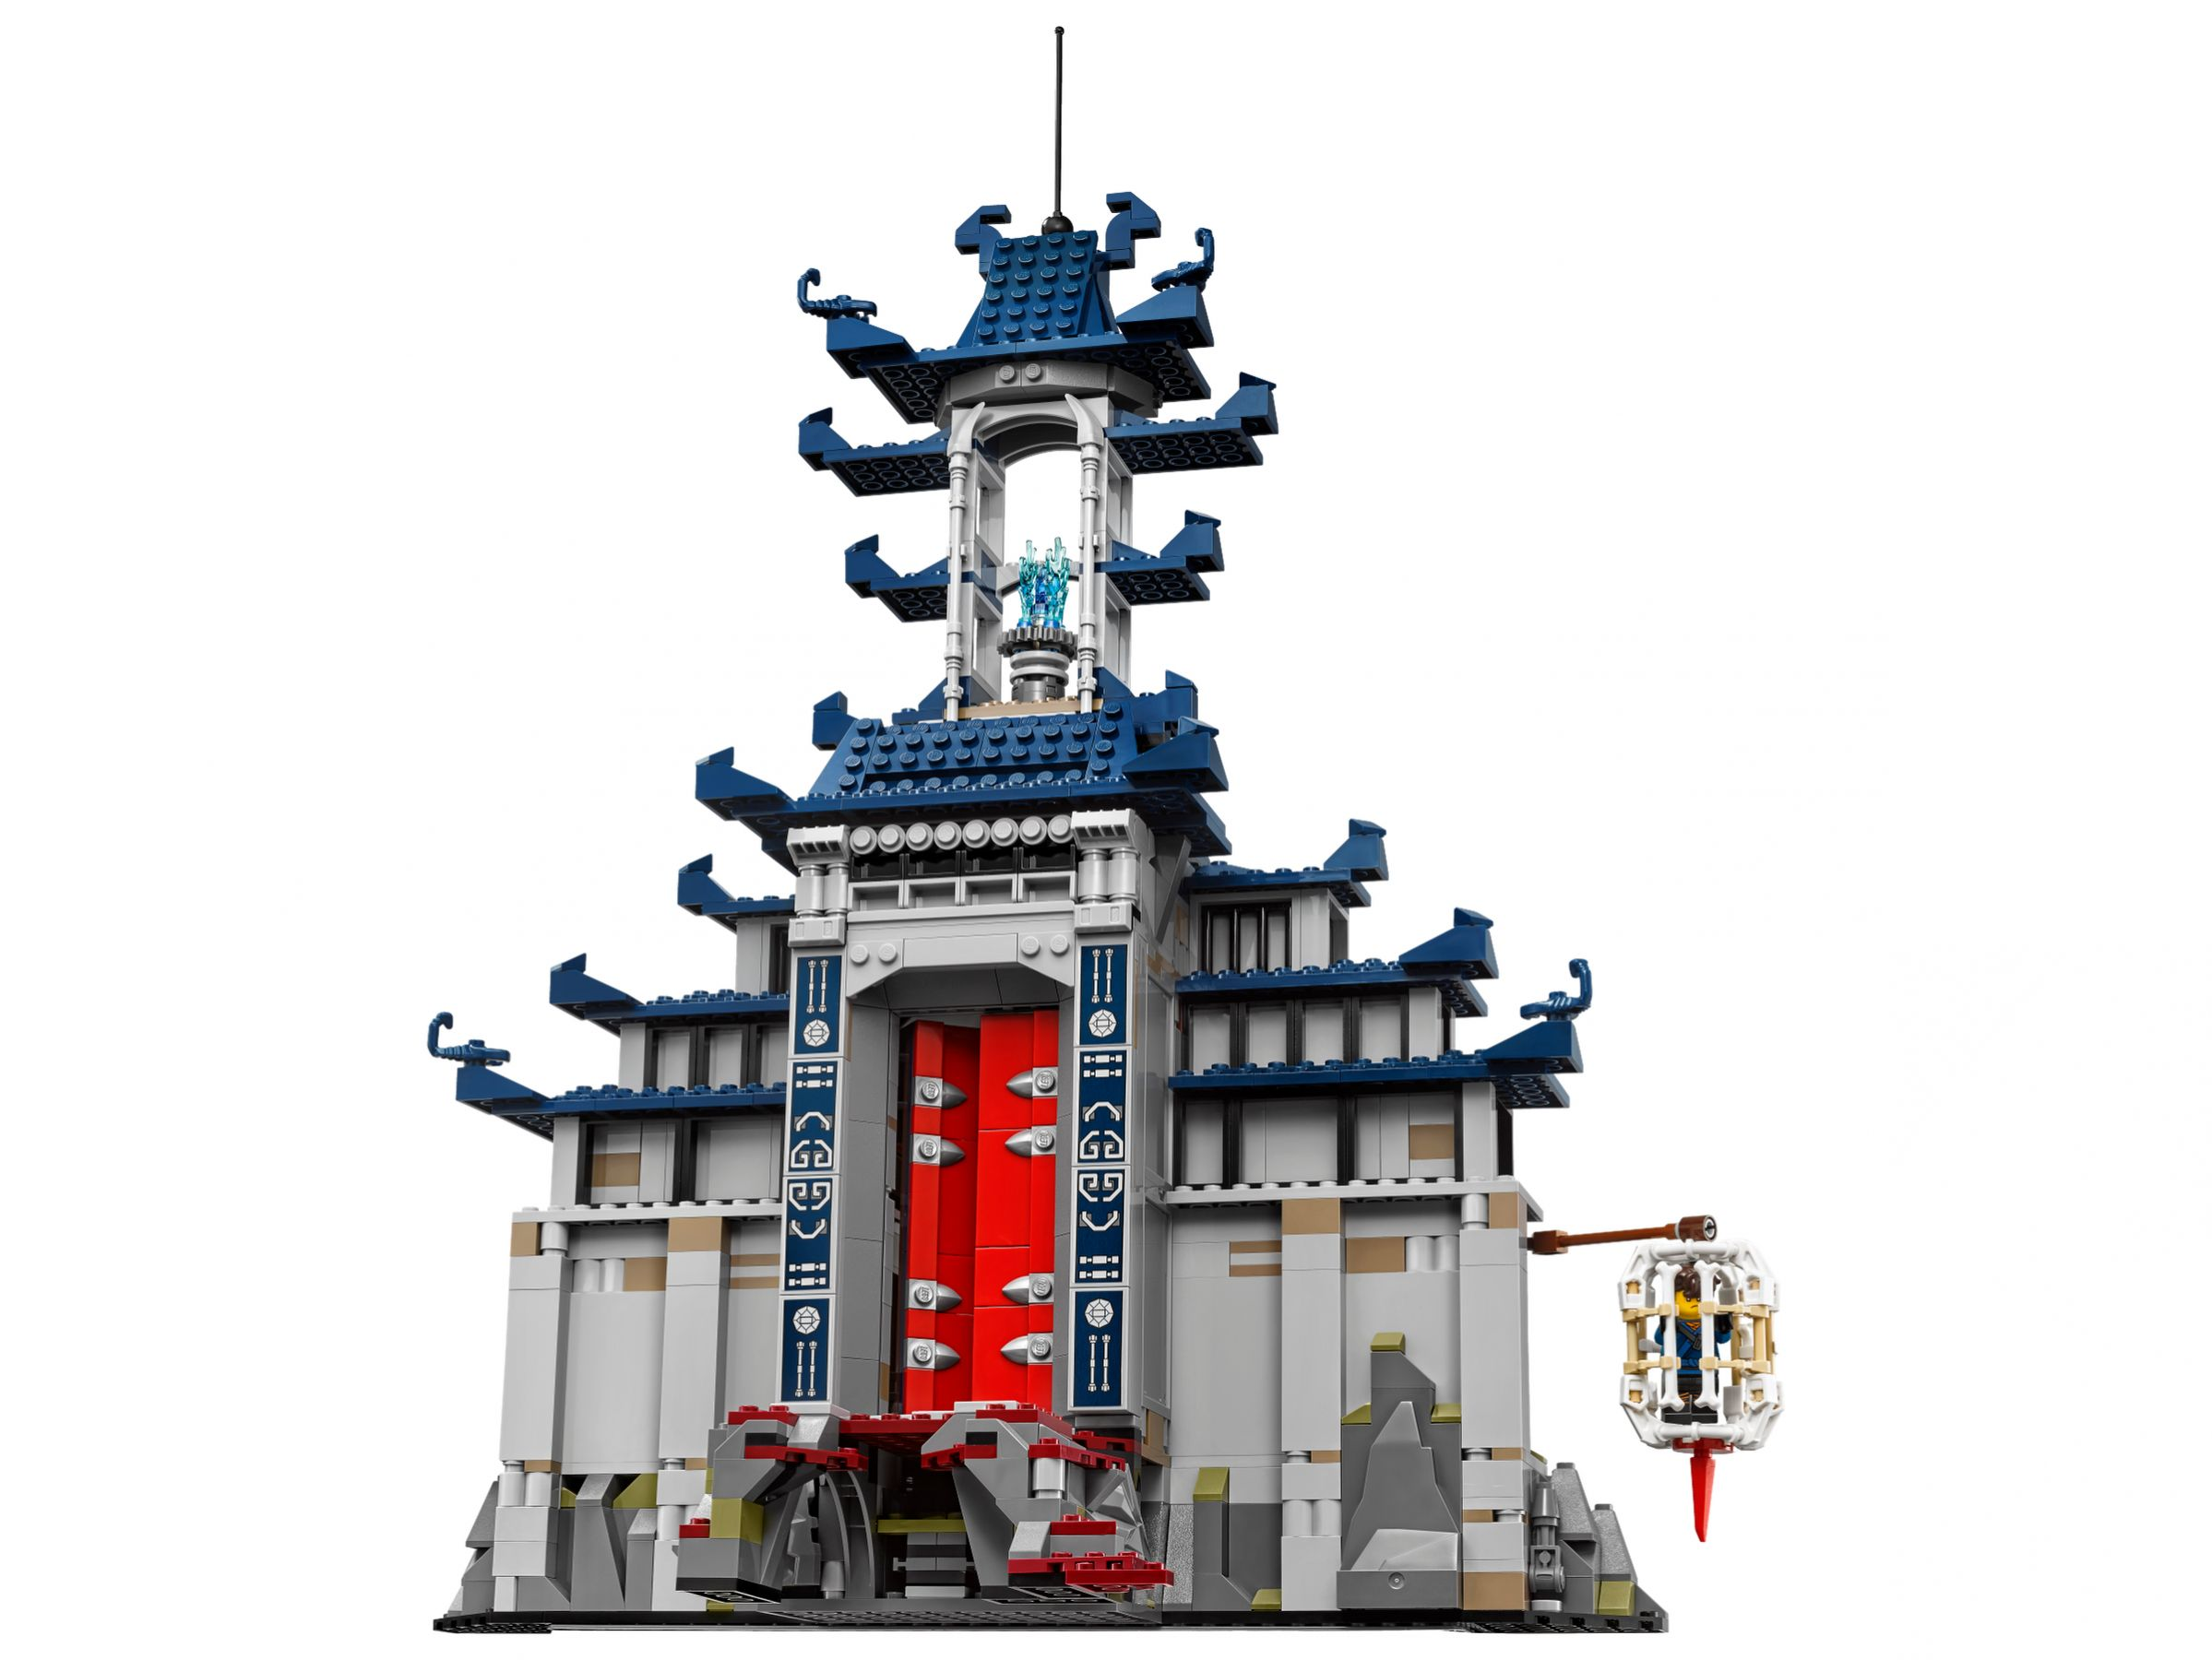 LEGO The LEGO Ninjago Movie 70617 Ultimativ ultimatives Tempel-Versteck LEGO_70617_alt2.jpg